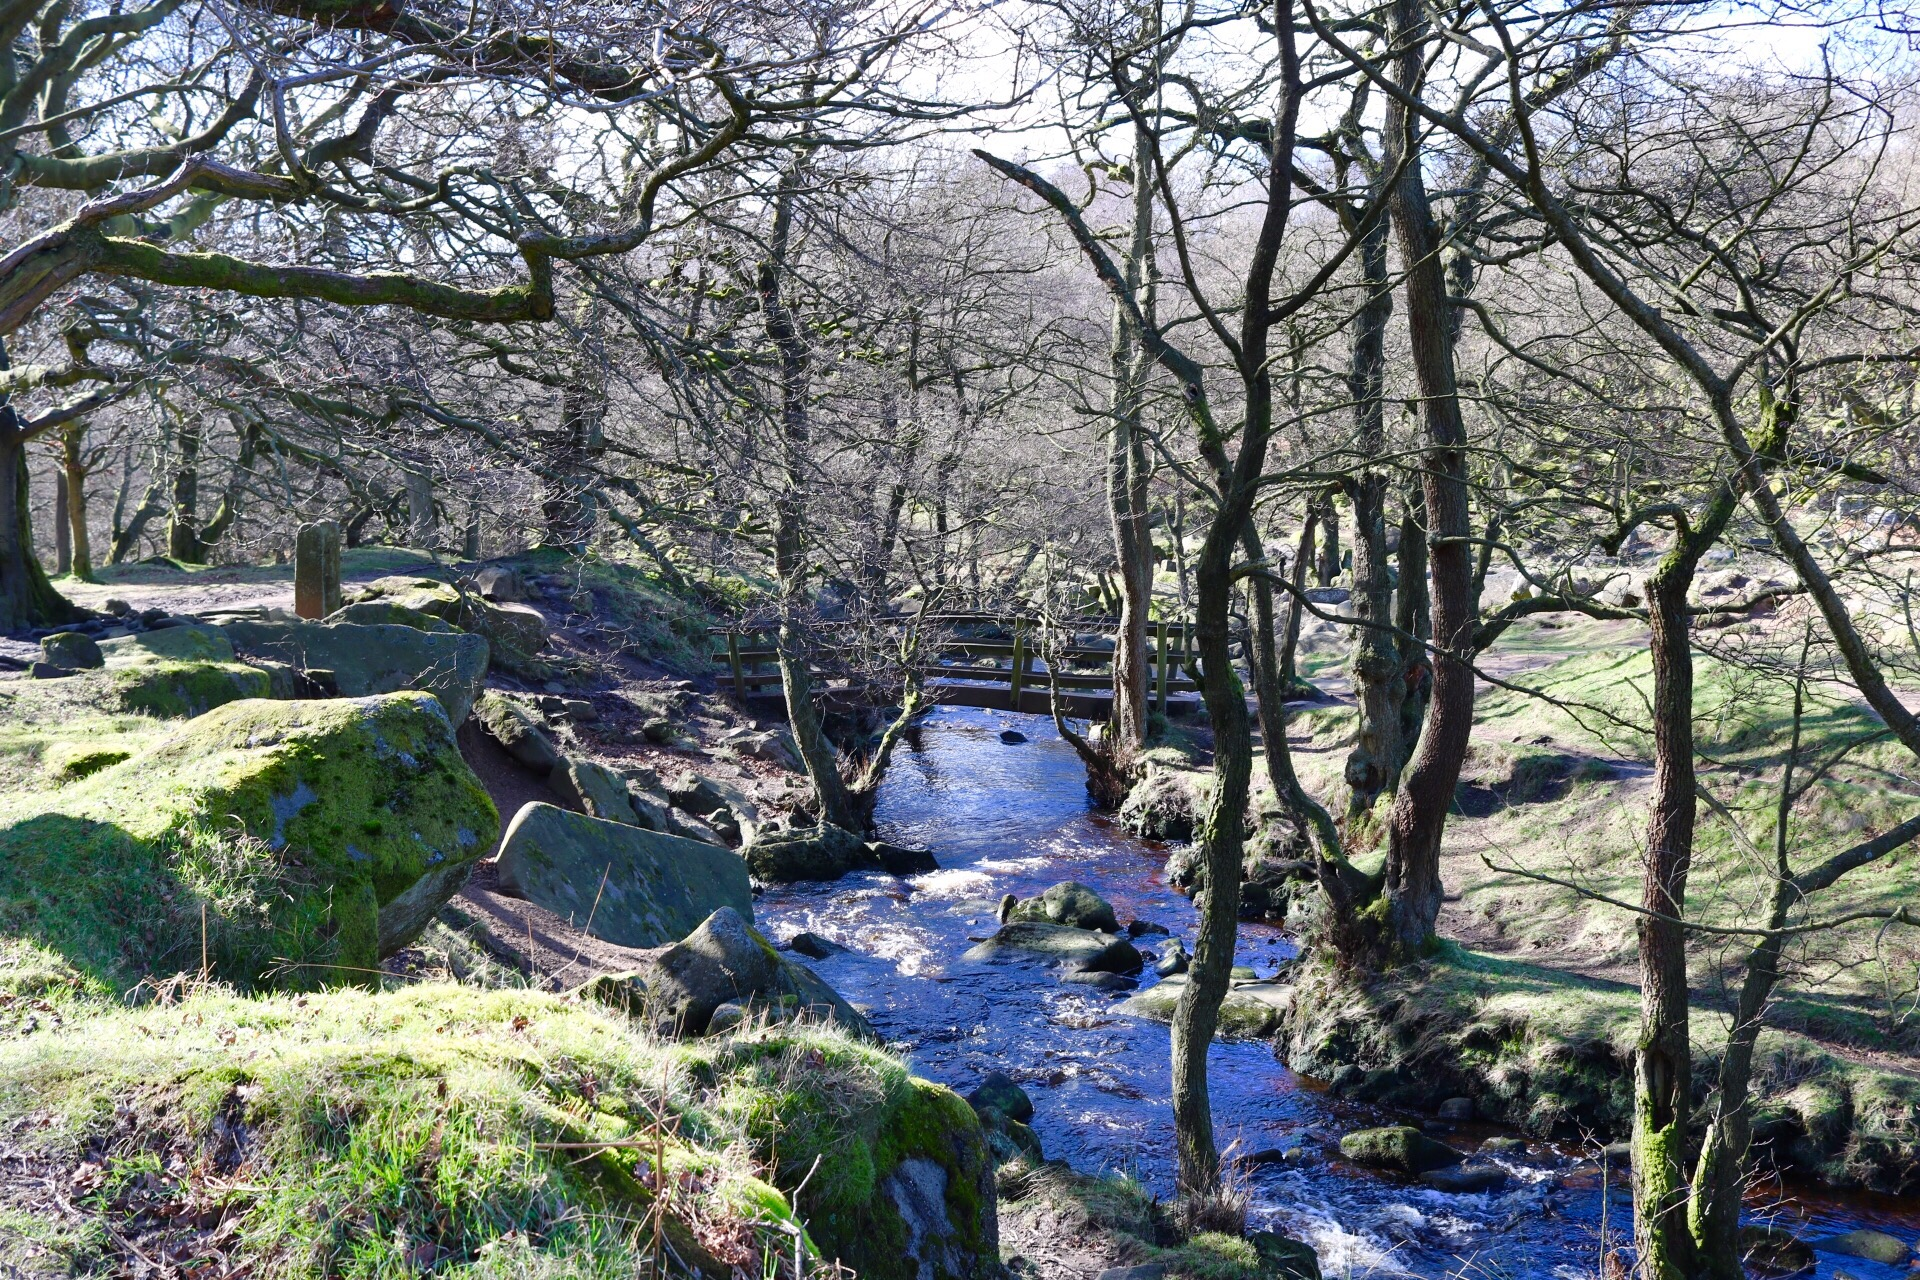 National Trust Family day out in the Peak District, near Sheffield at Longshaw Estate and Padley Gorge